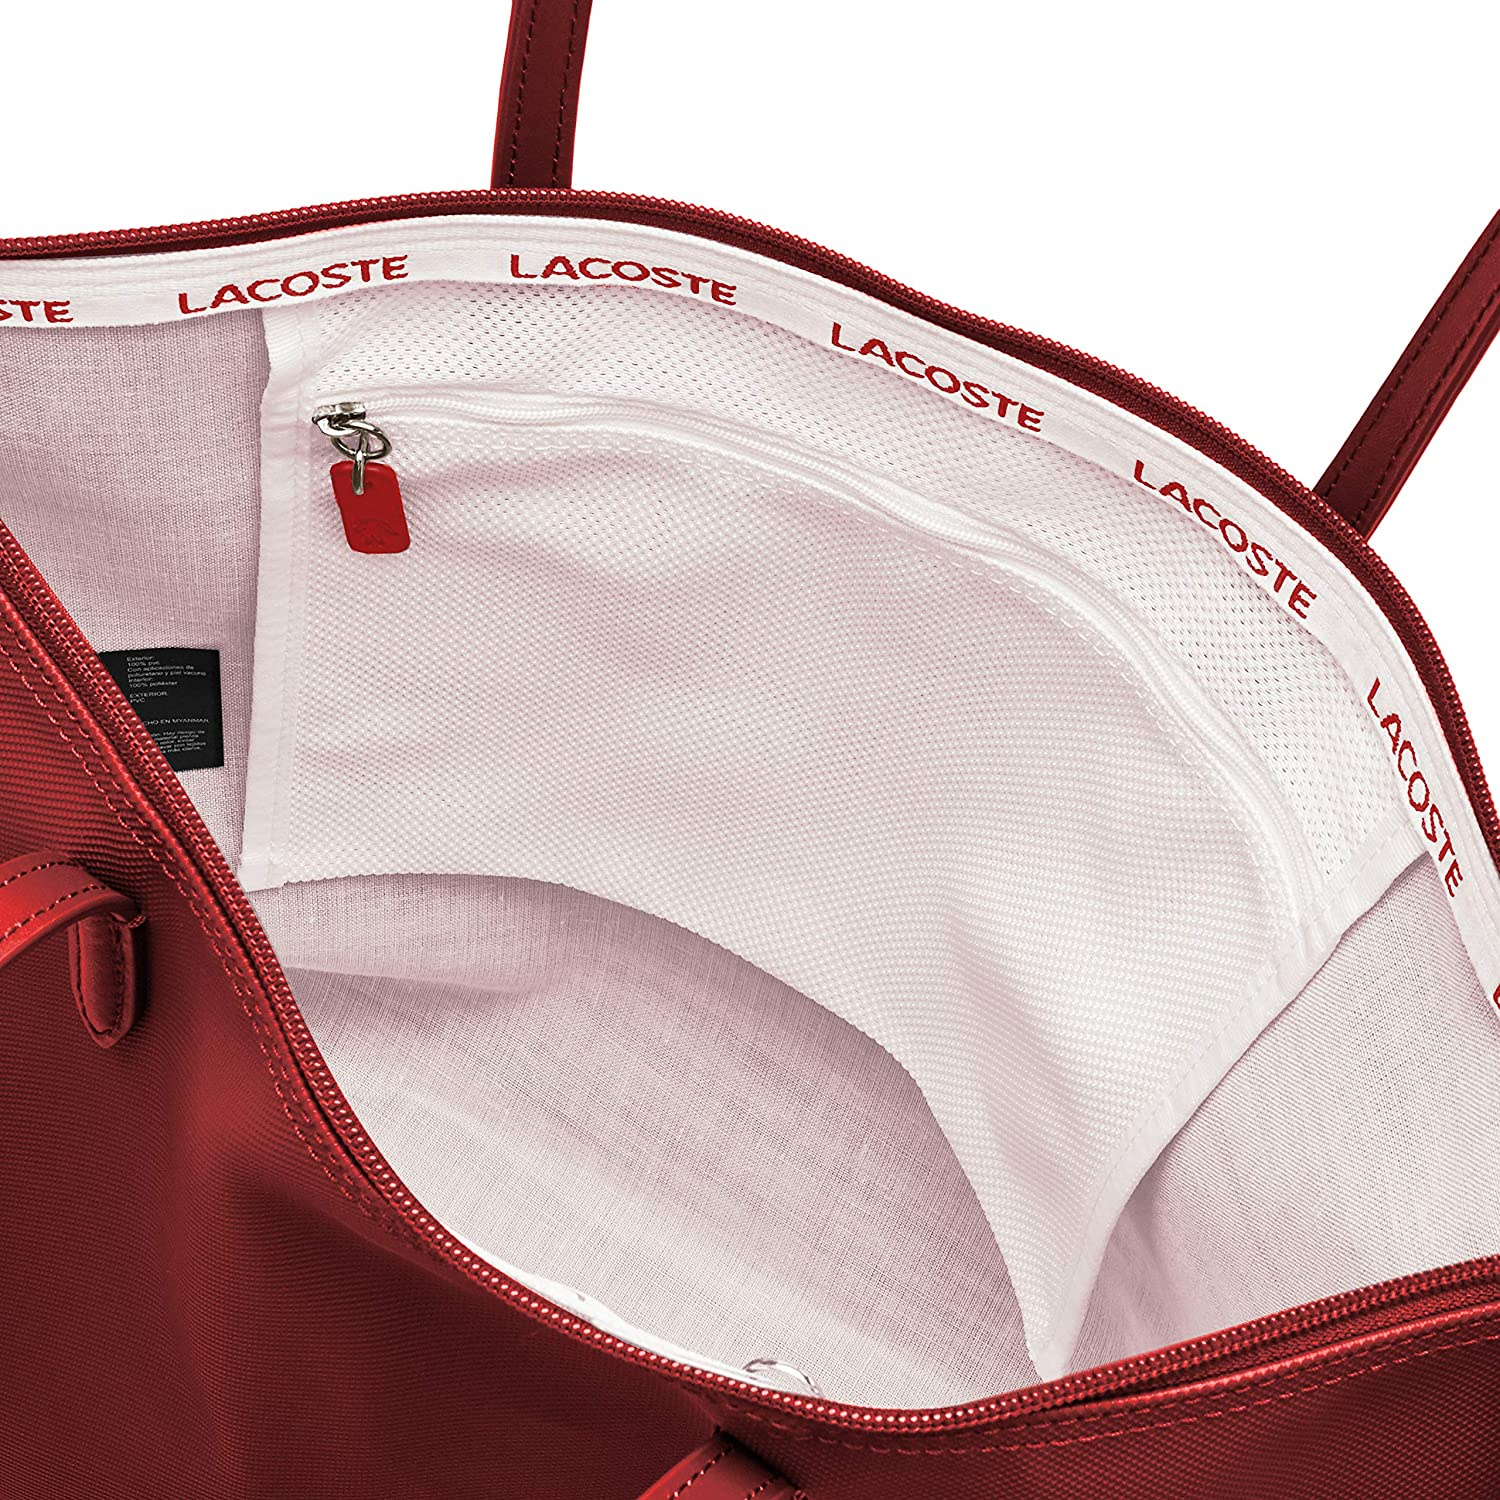 Bolsos totes Mujer Lacoste Nf1890